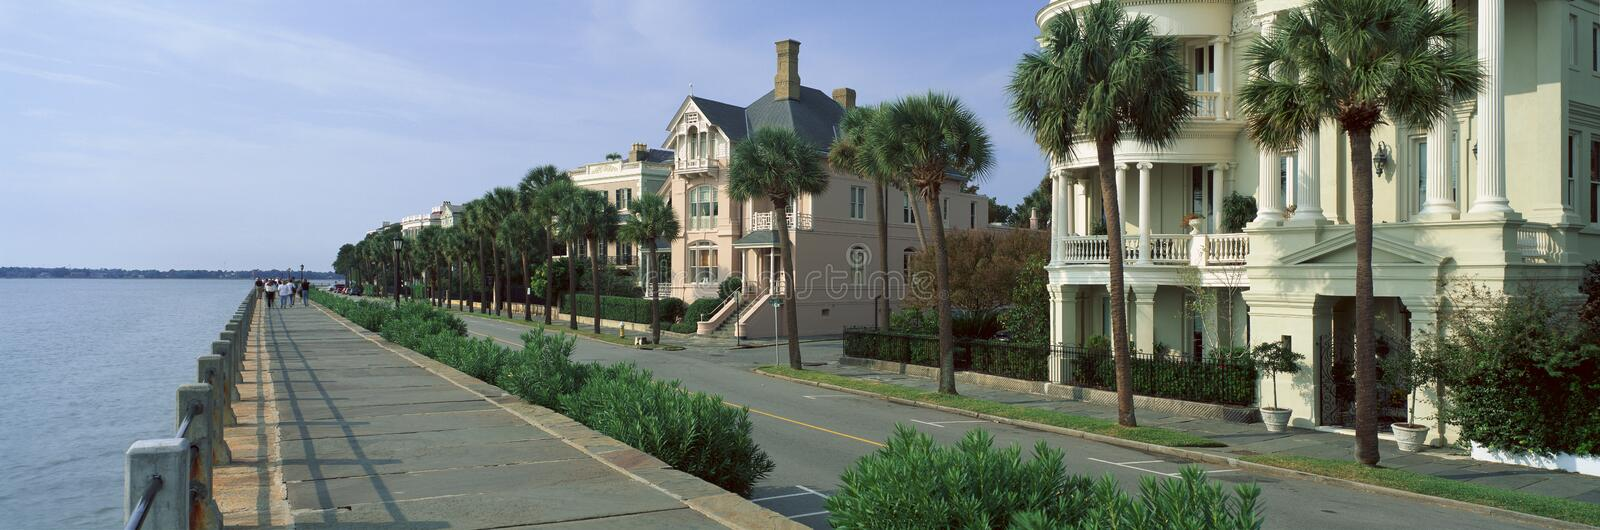 Atlantic Ocean with historic homes of Charleston, SC royalty free stock photography